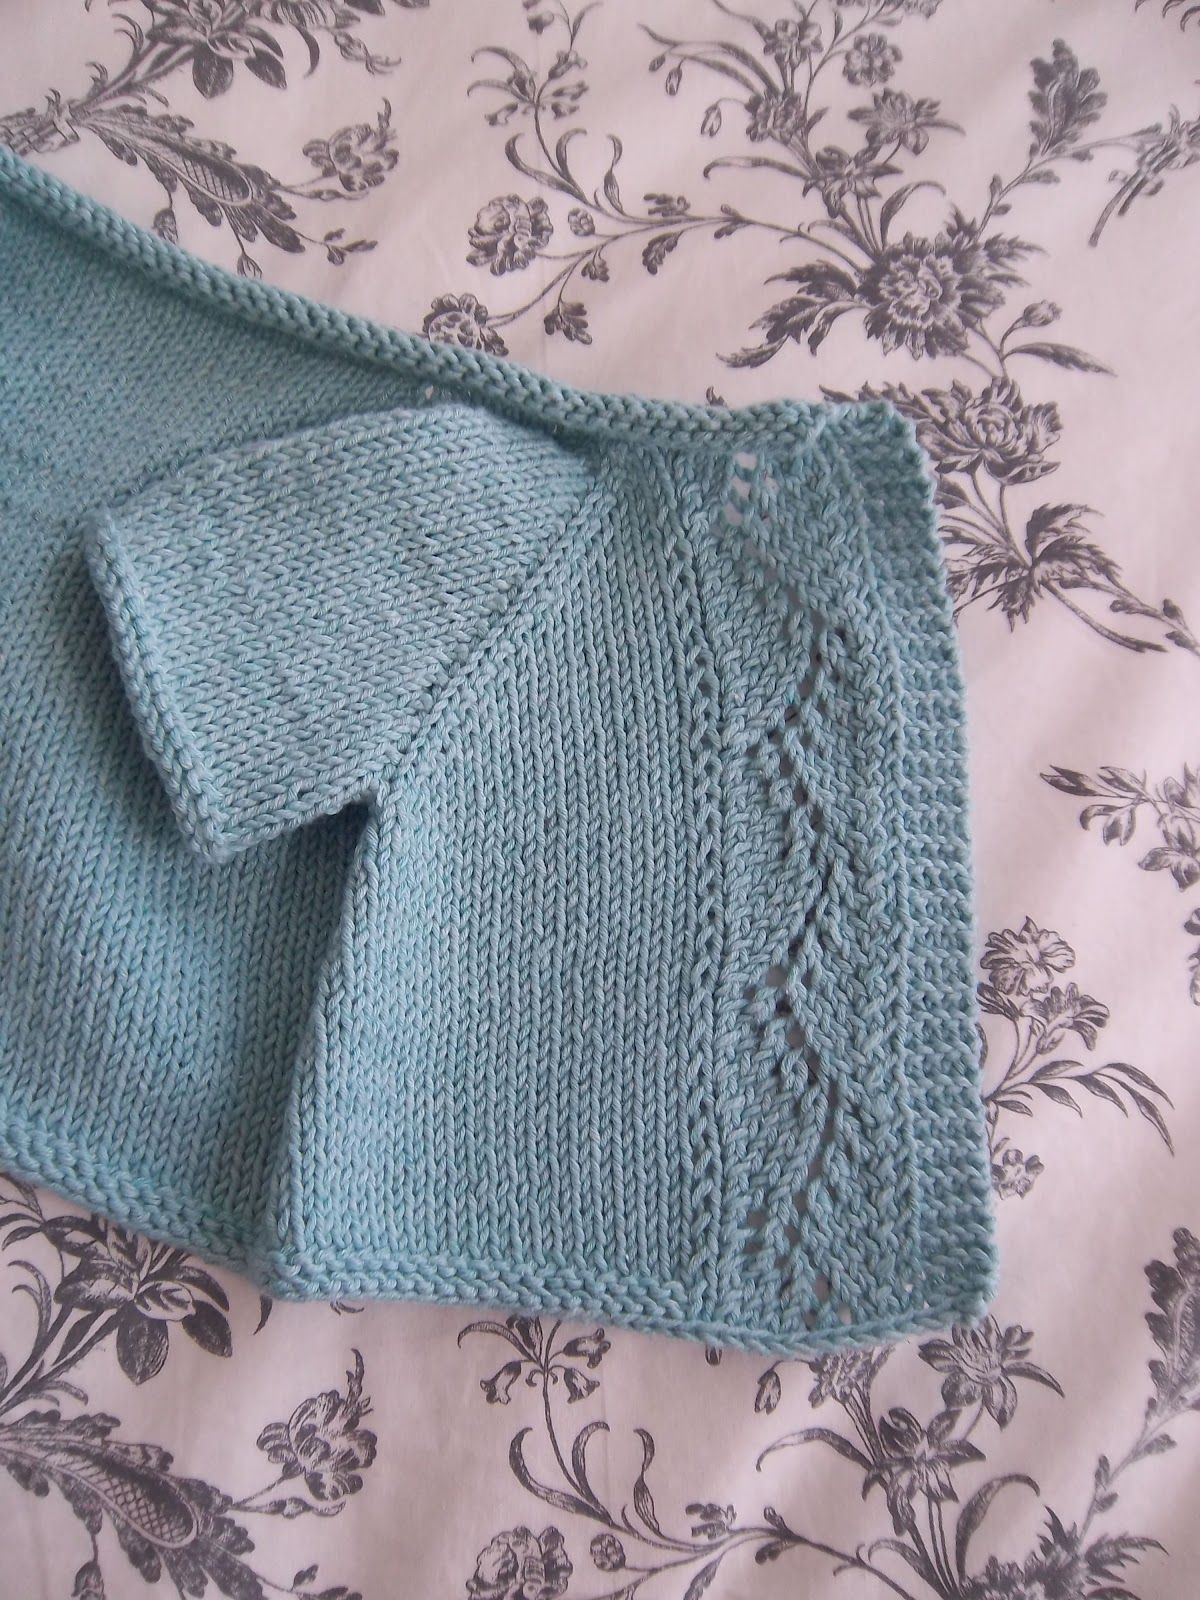 Lovely Vine Lace Cardi Pattern by Kasia Lubinska Free Knitting Patterns for Baby Sweaters Of Superb 43 Pics Free Knitting Patterns for Baby Sweaters